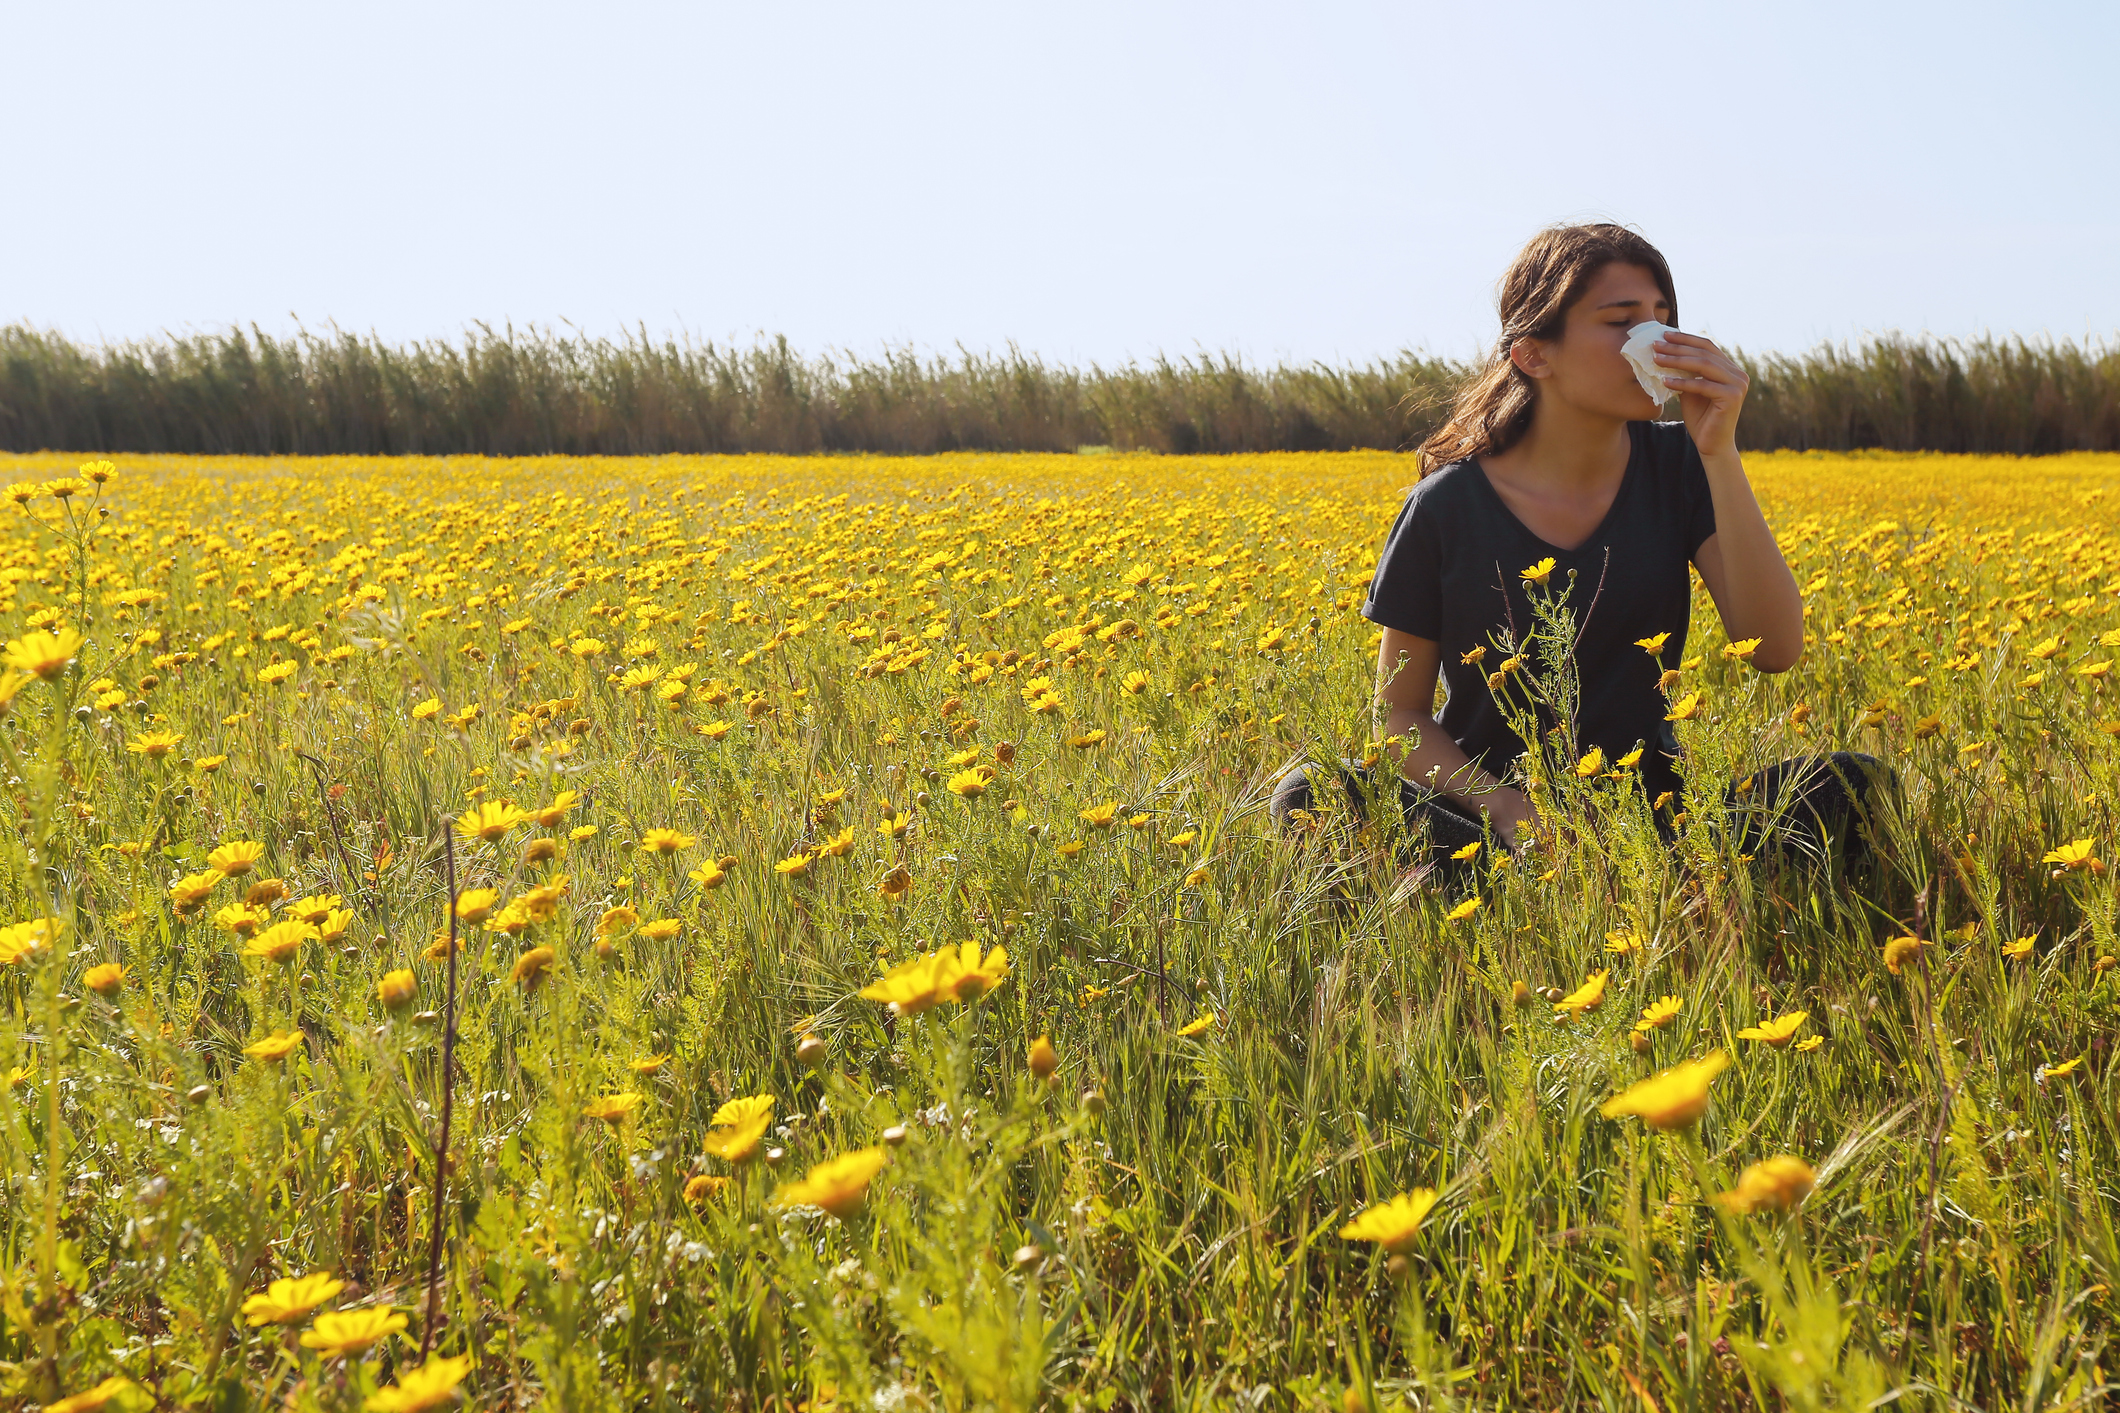 A young girl in flowery field sneezing in Cyprus.